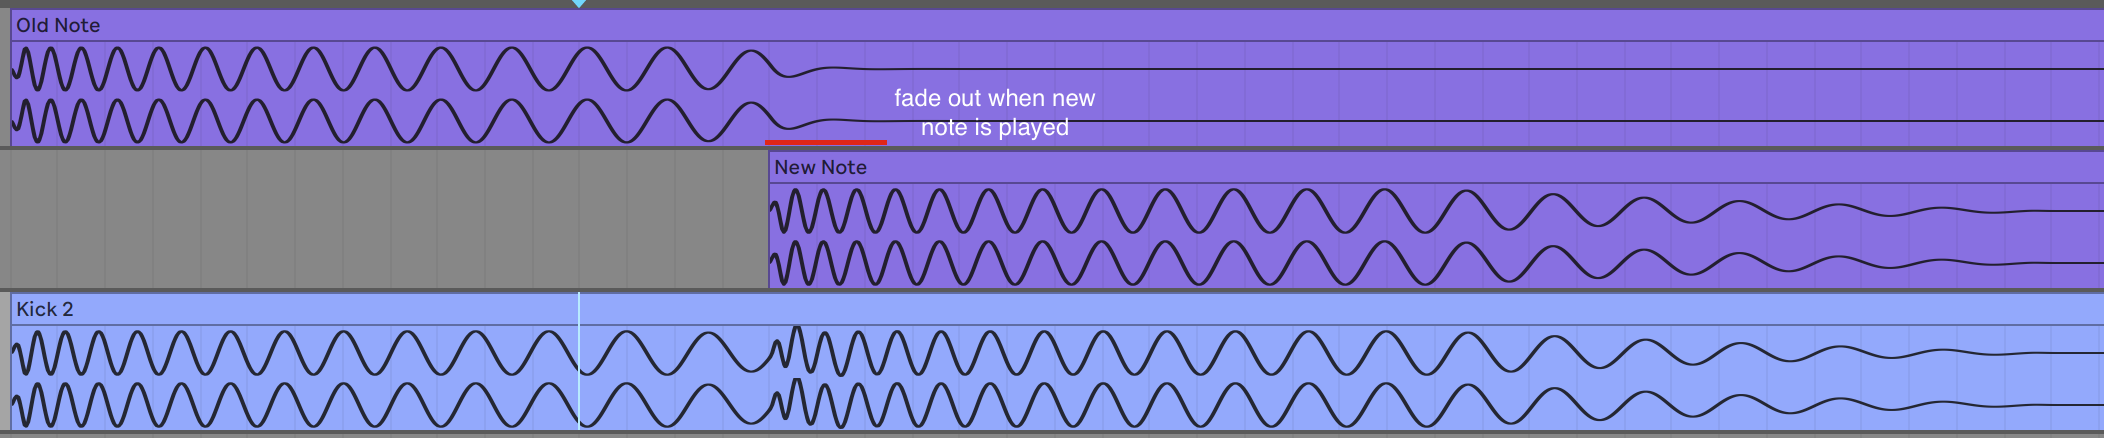 using phase cancellation to show what sonic academy kick 2 does for voice stealing